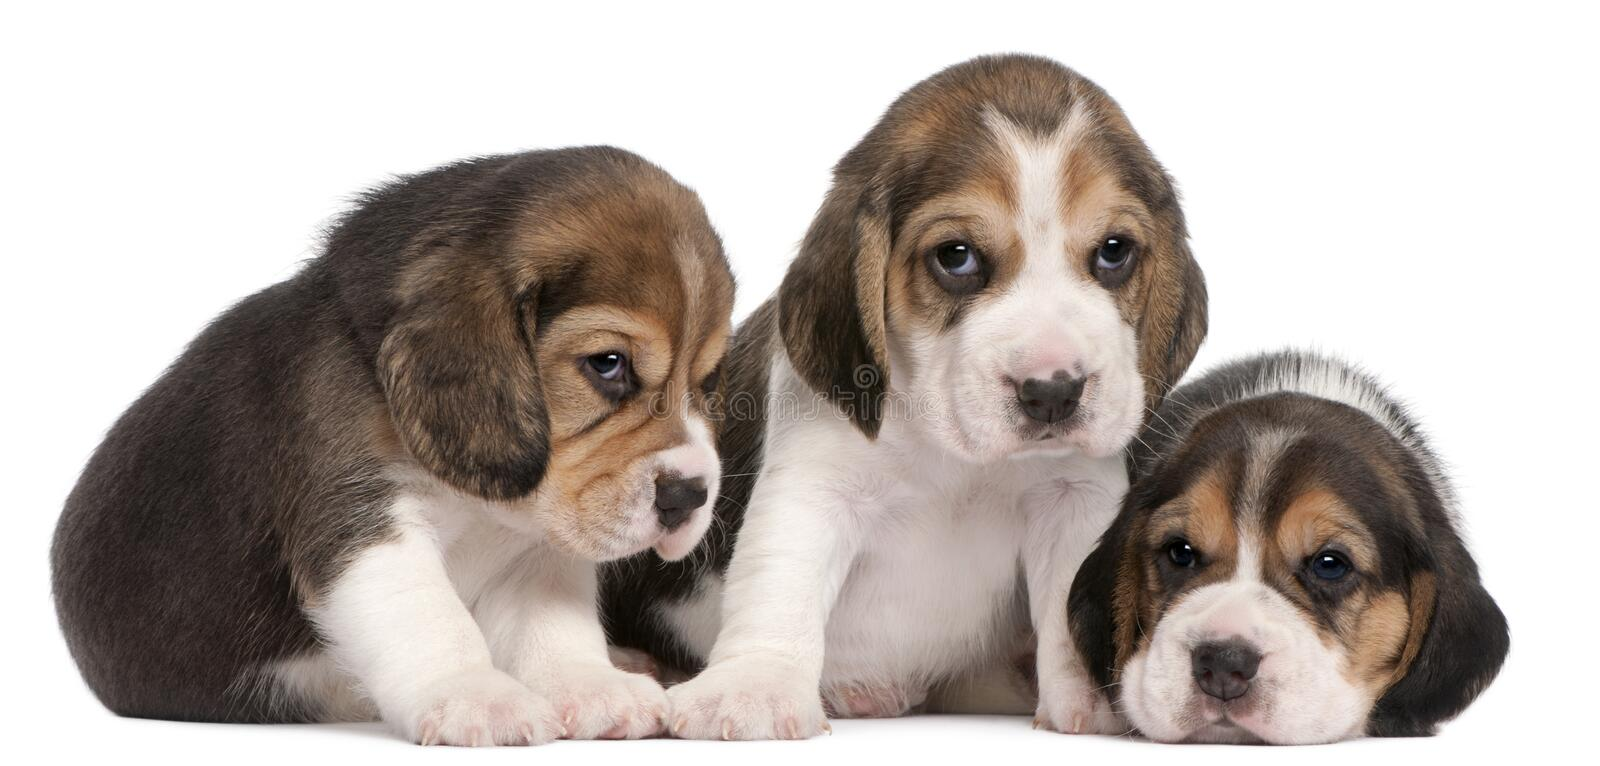 Group of Beagle puppies, 4 weeks old royalty free stock photography